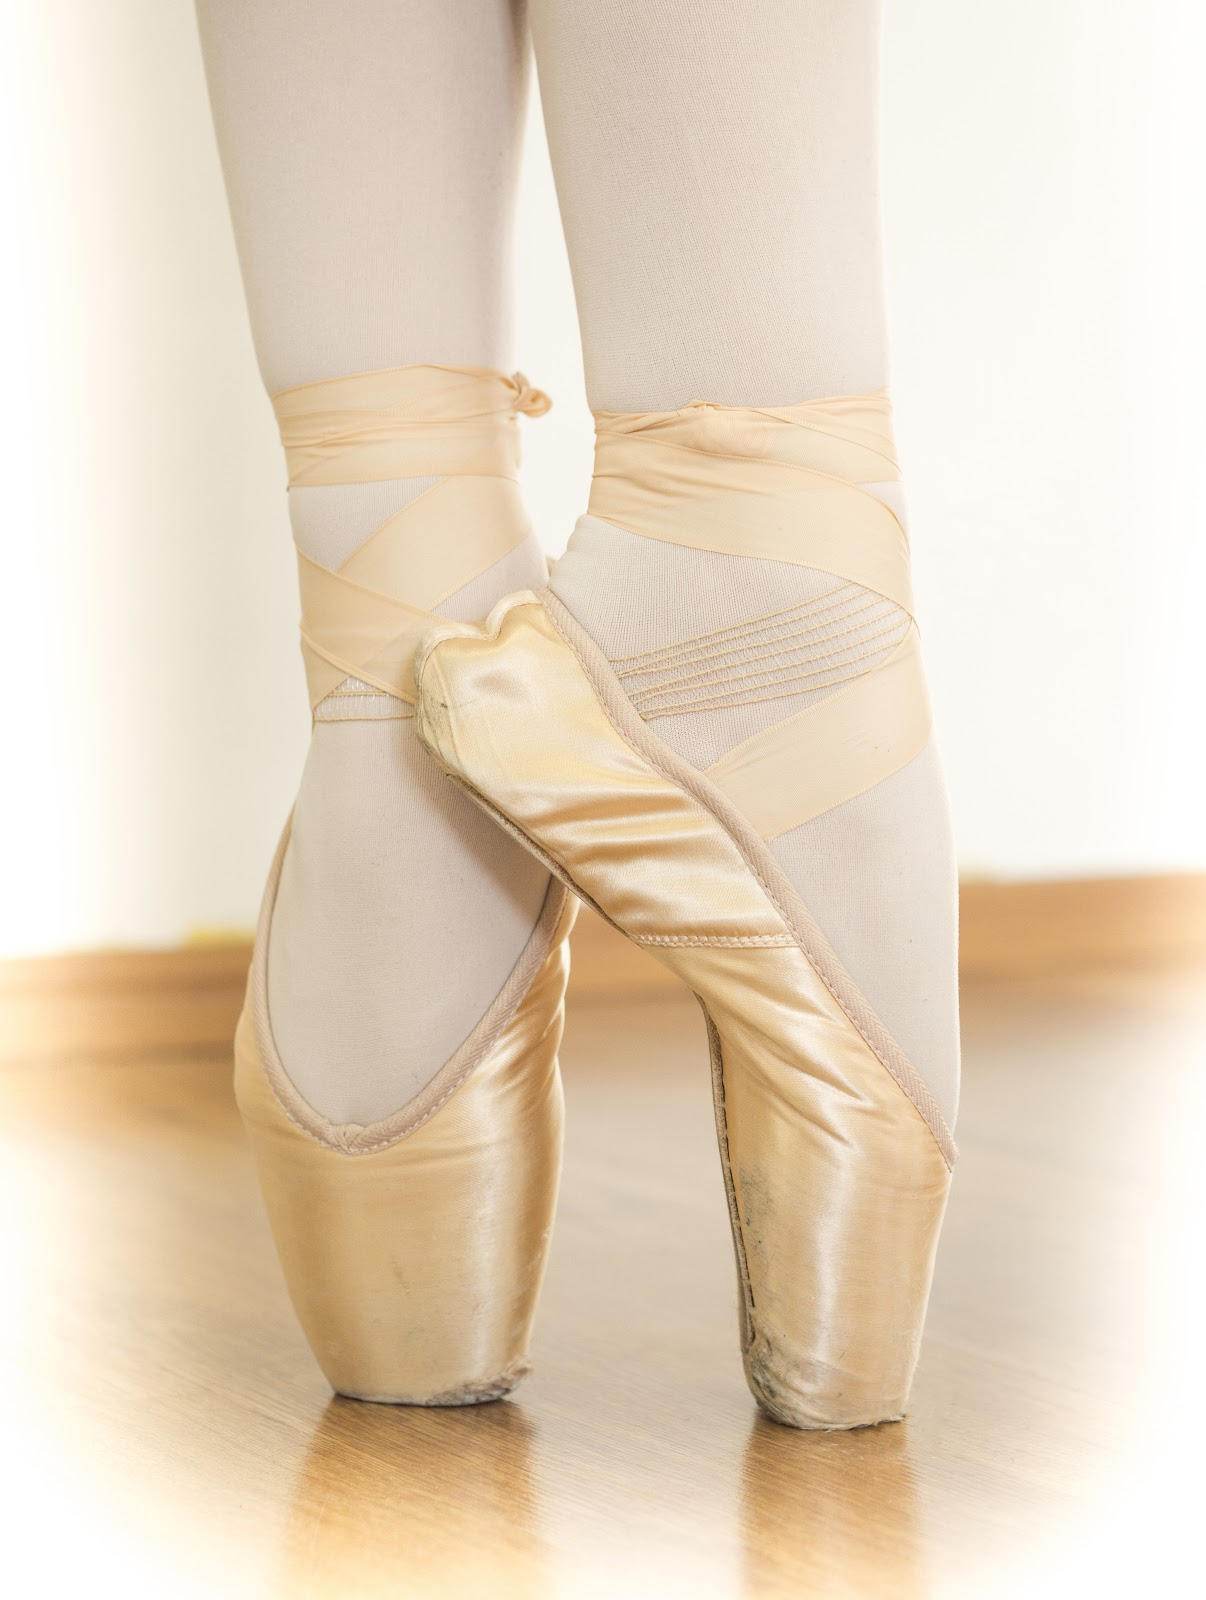 https://upload.wikimedia.org/wikipedia/commons/c/c4/Ballet_shoes_%28Russian_ballet_school_%D0%9C._%D0%98%D1%81%D0%B0%D0%B5%D0%B2%D0%B0%29.jpg